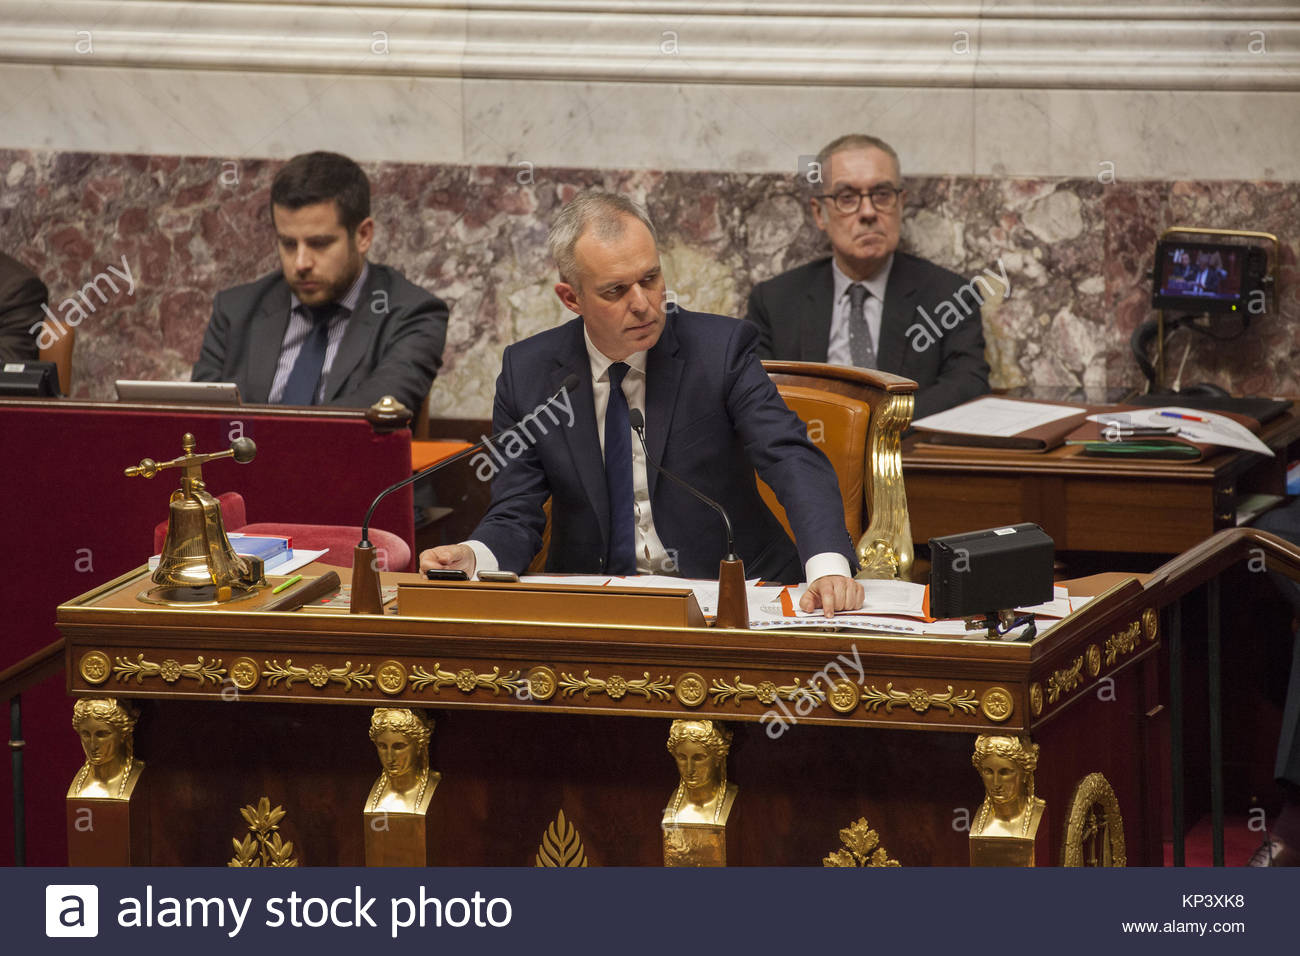 Paris, France. 12th Dec, 2017. French national assembly president Francois de Rugy is seen during a session of questions - Stock Image